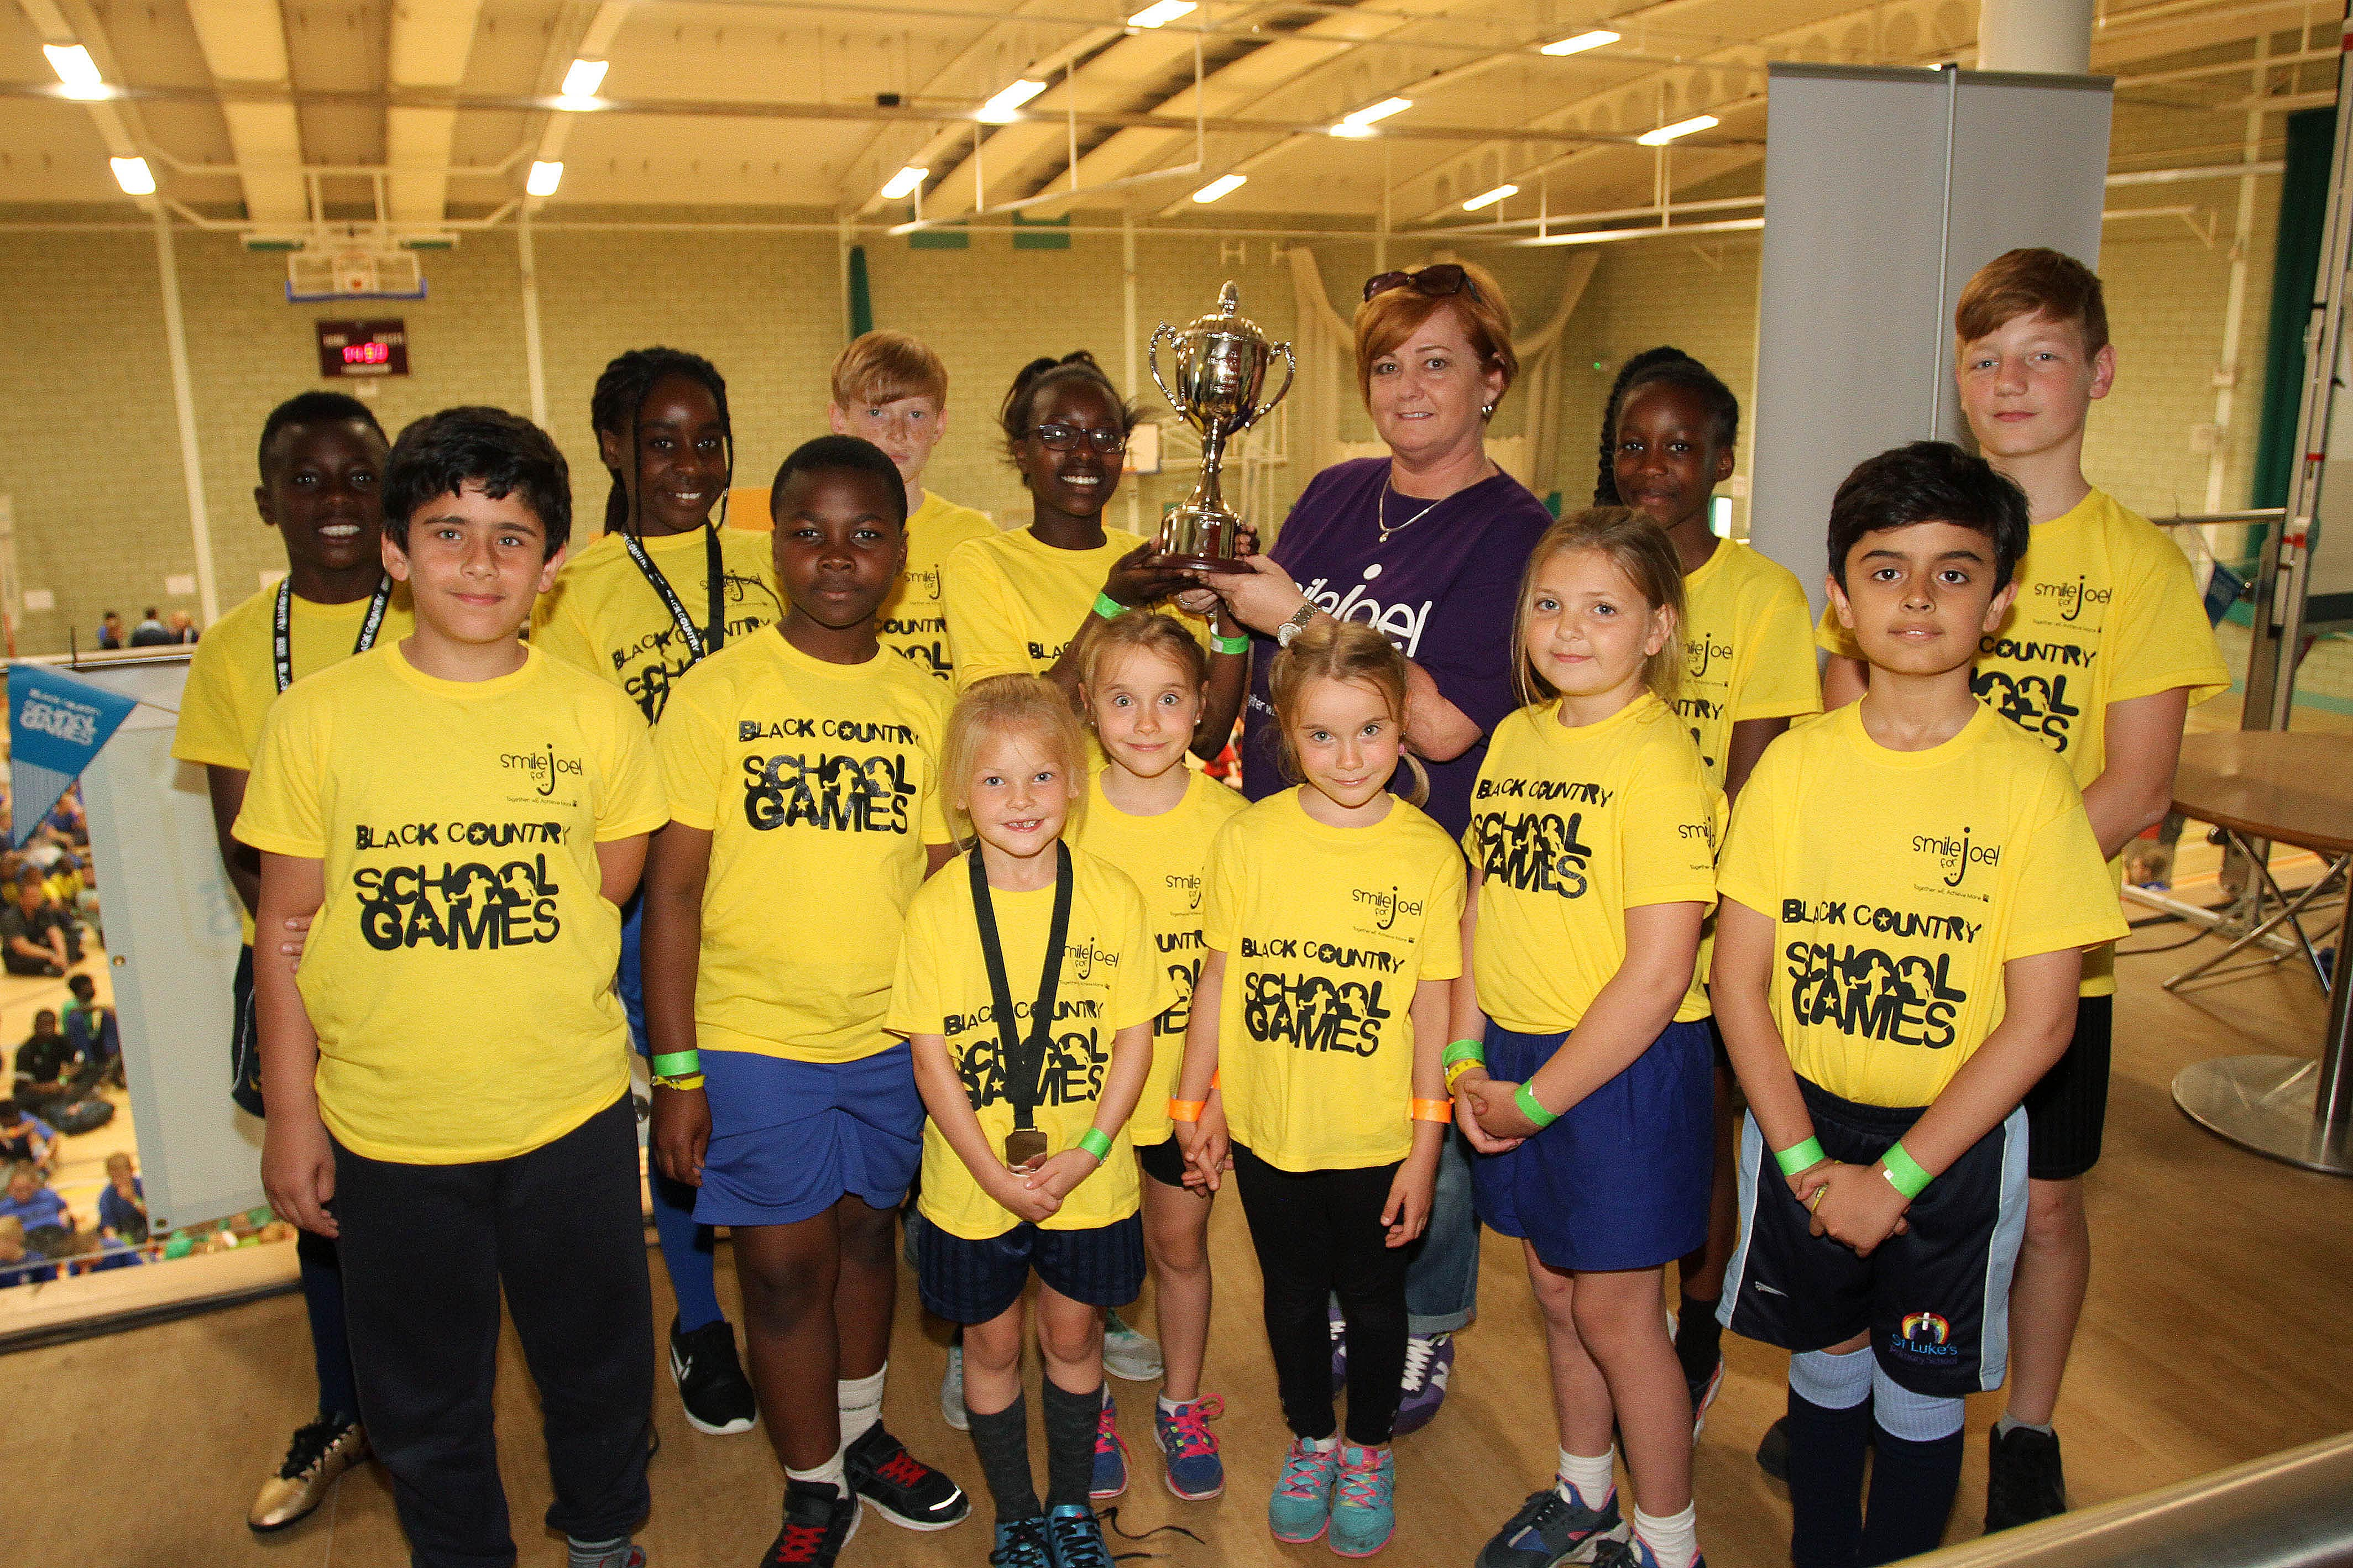 Black Country School Games Summer Festival – It's back